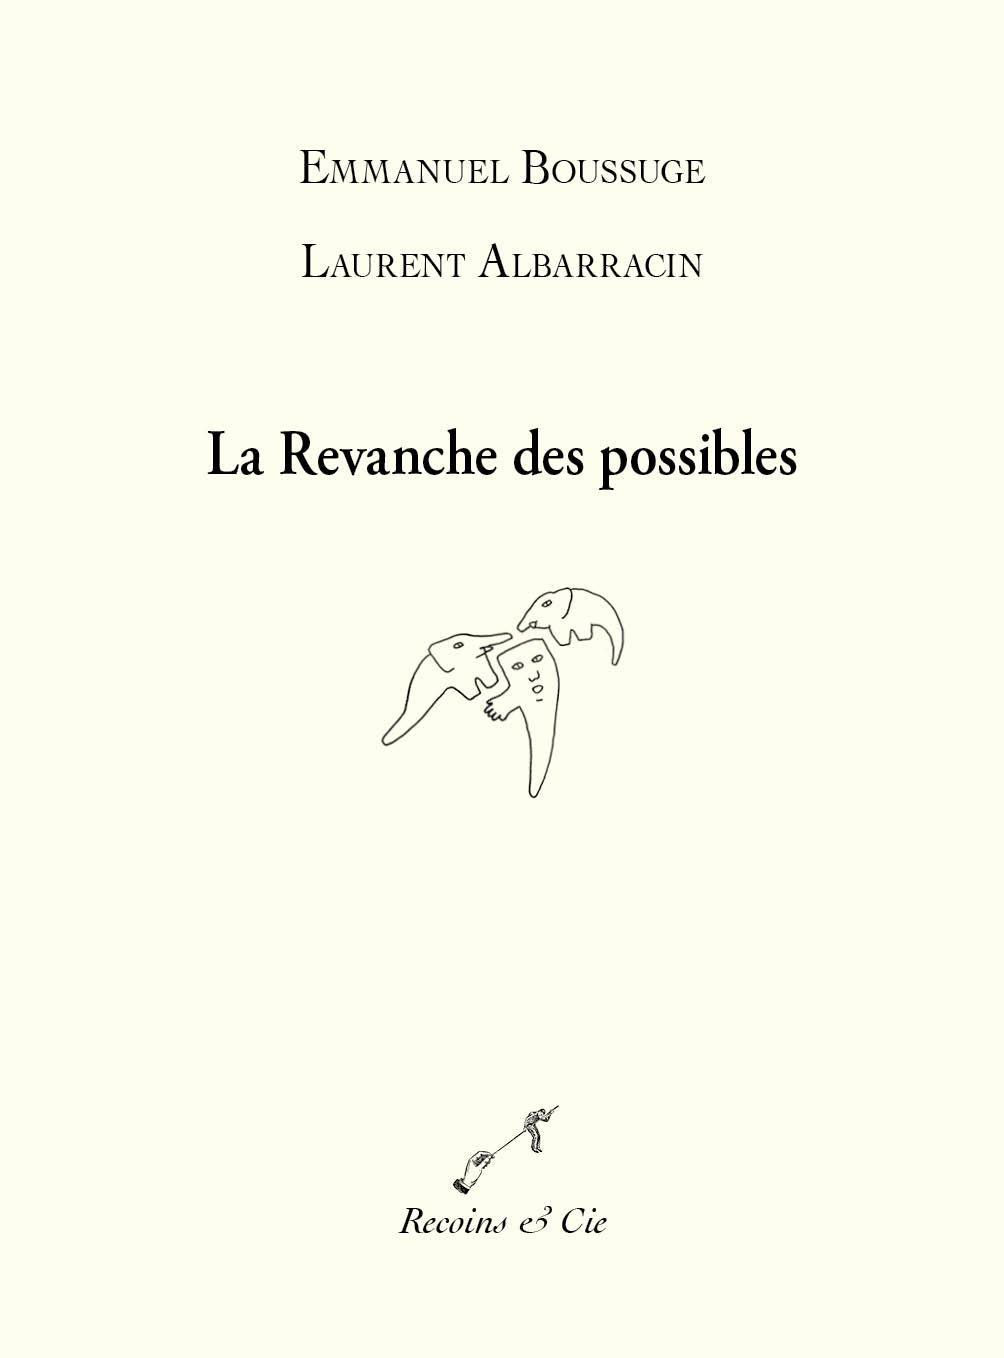 Laurent ALBARRACIN, La Revanche des possibles, Recoins & Cie Éditions